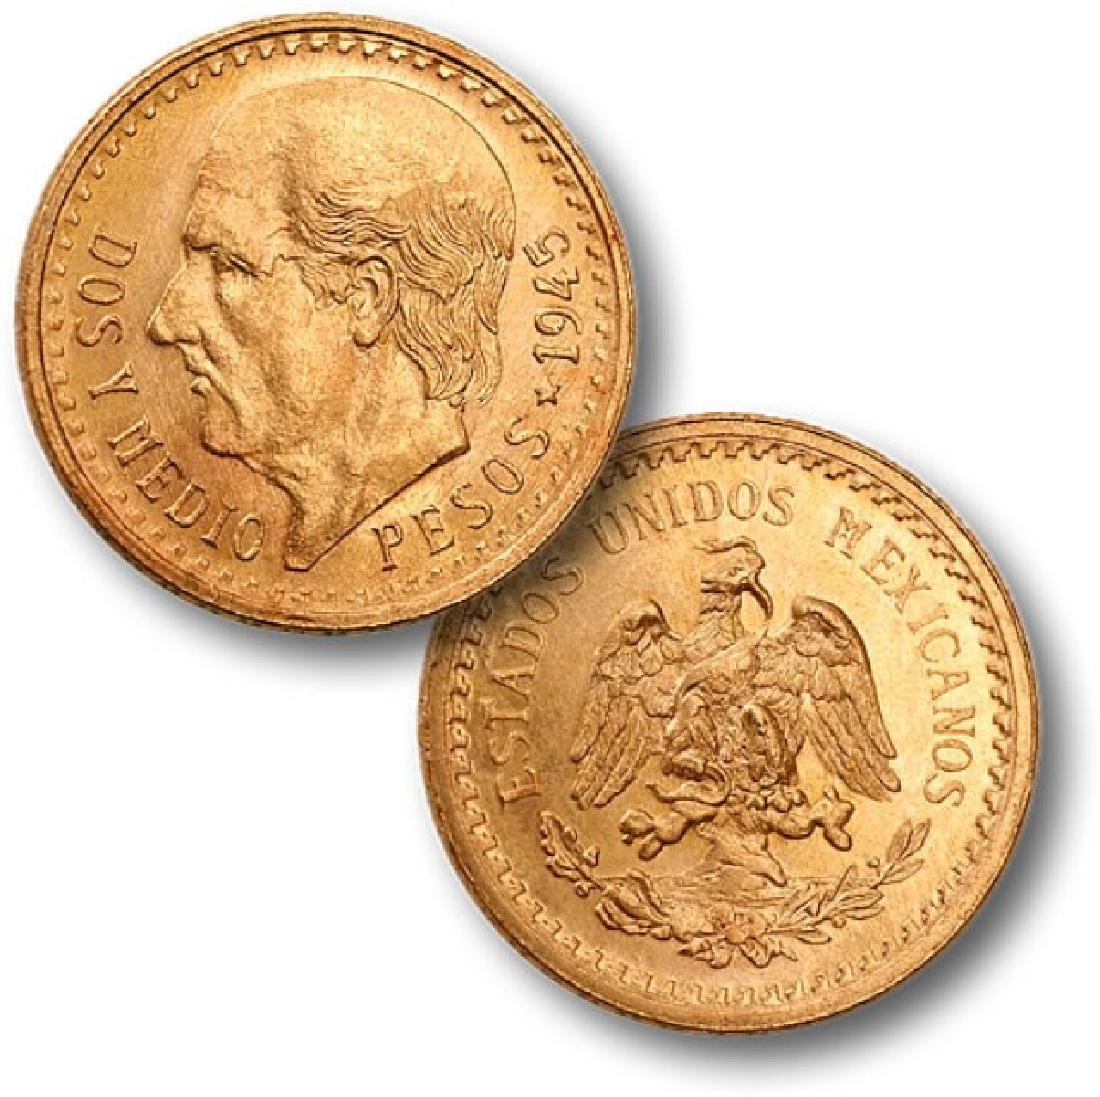 Stunning -1947 Mexican Gold 50 Peso